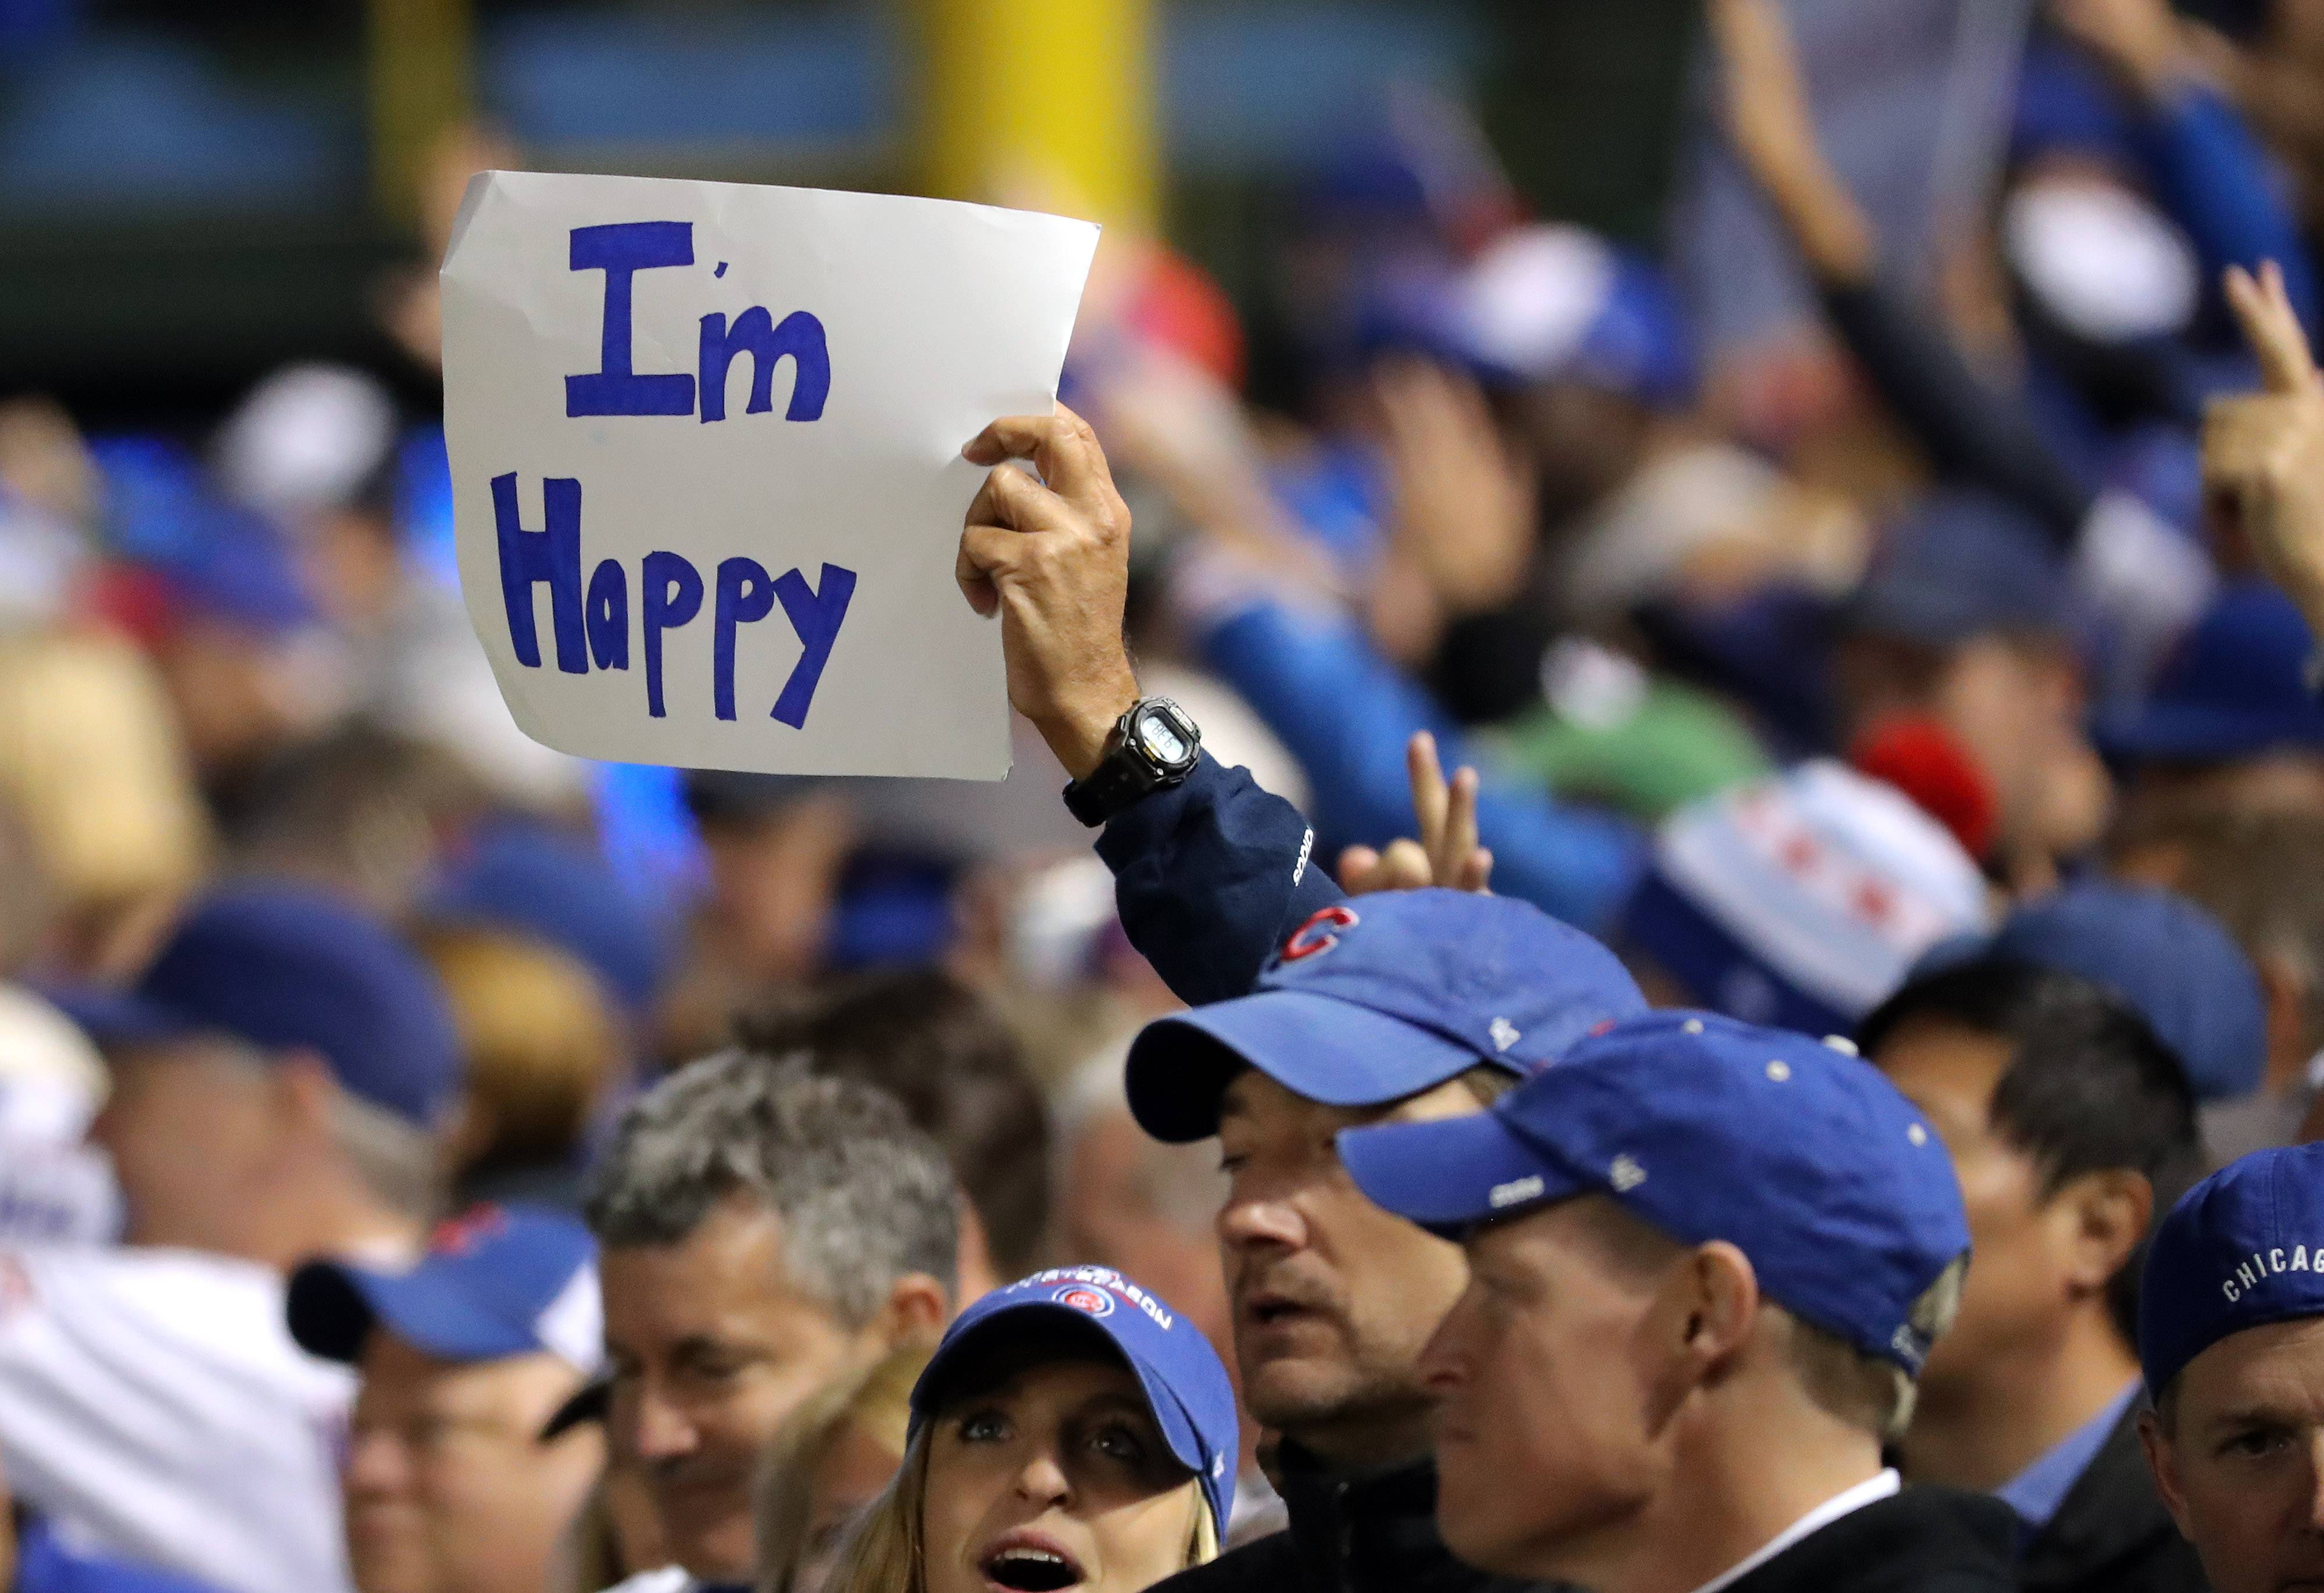 Yes, there is crying in baseball, for the Cubs